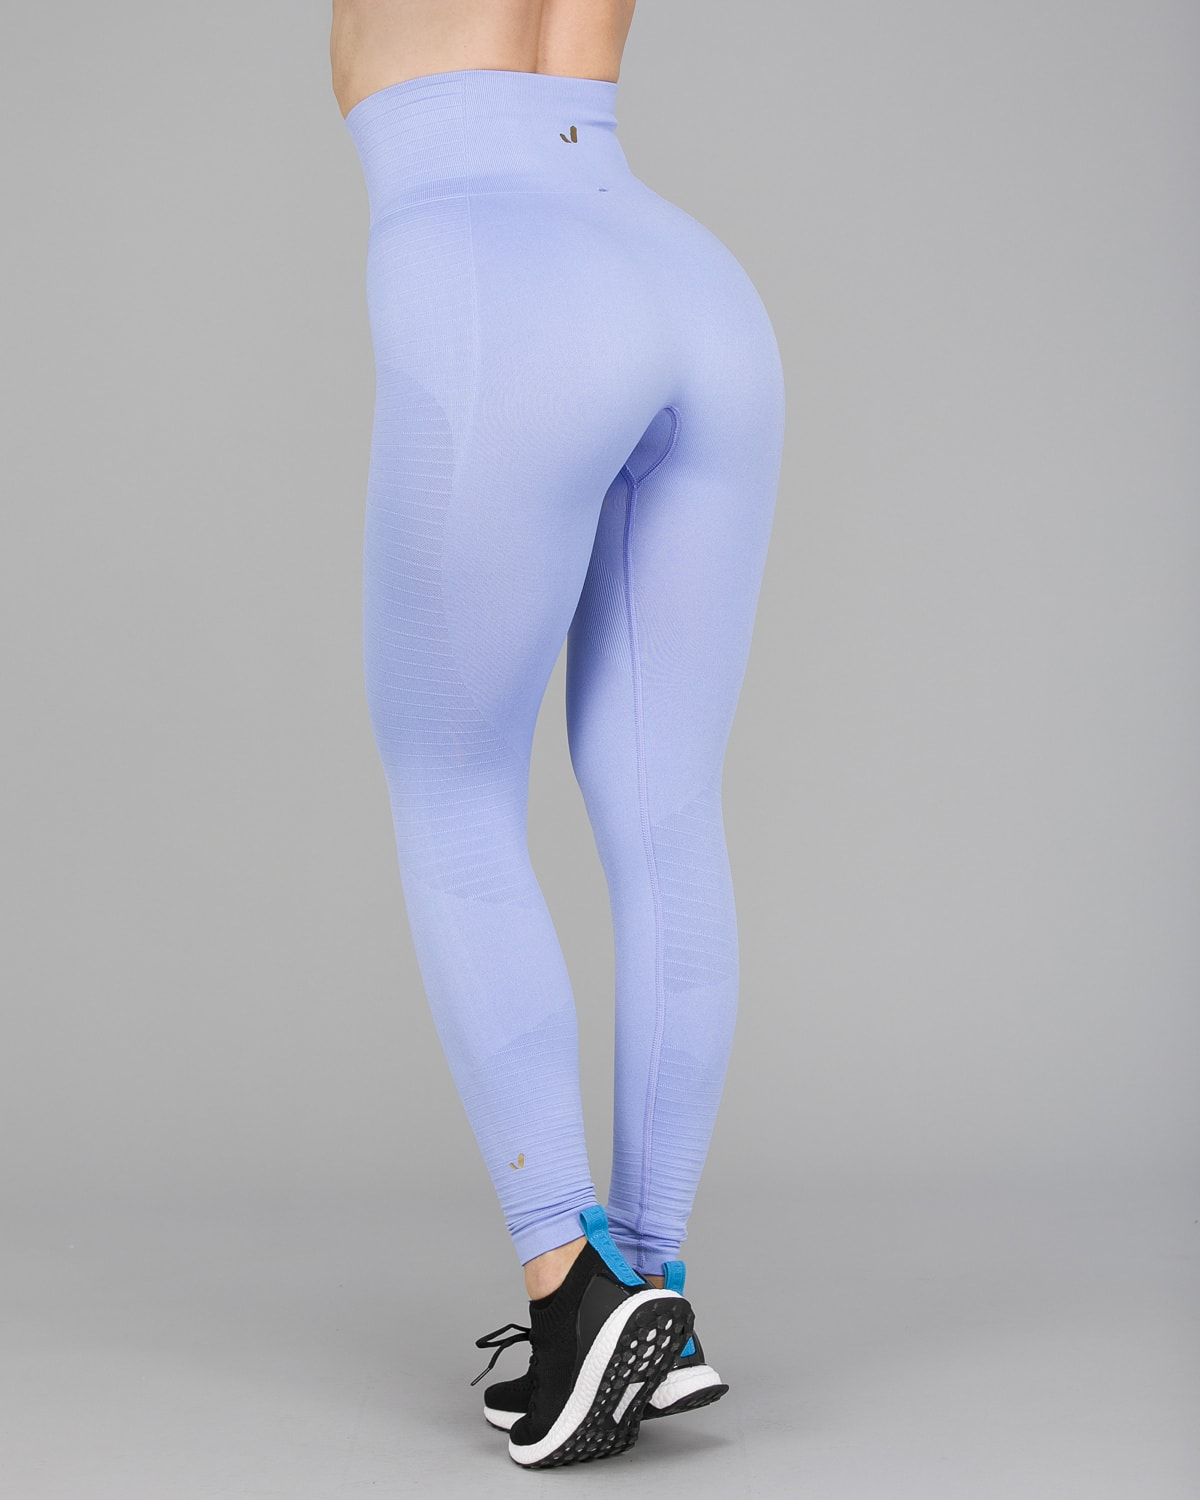 Jerf Gela 2.0 Tights Blue Pastel12